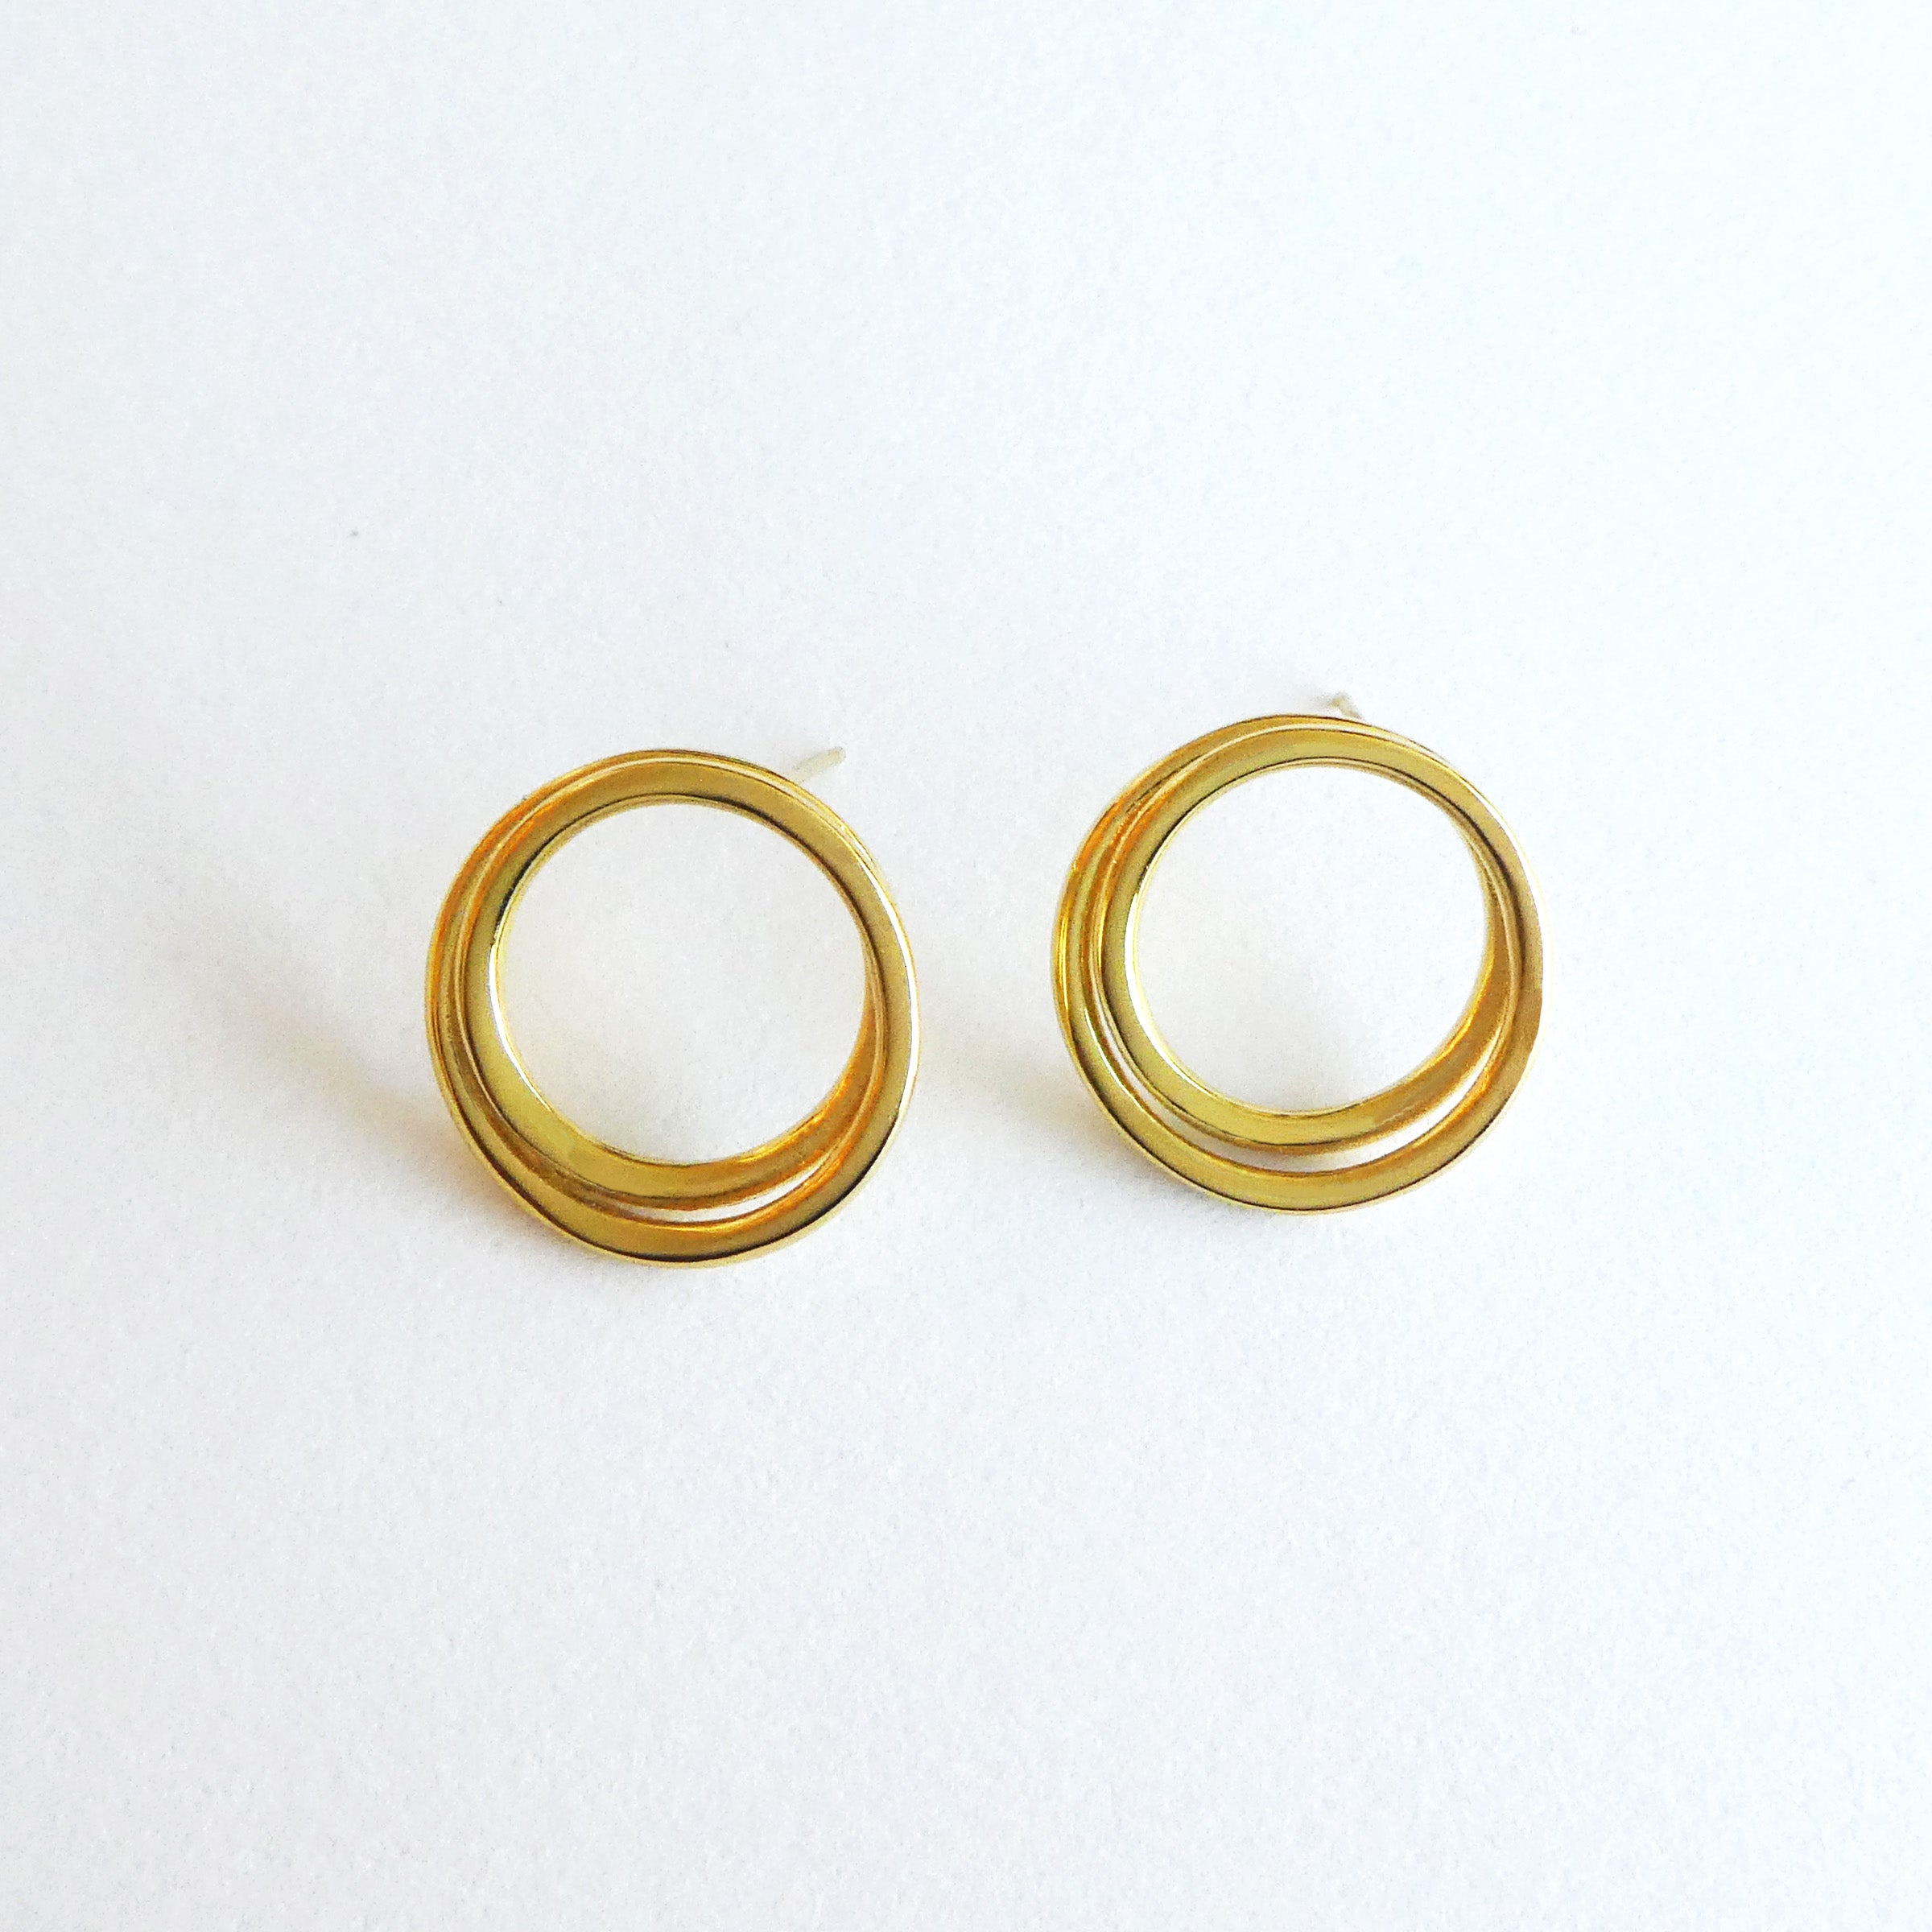 under givenchy article earrings cheap looking expensive women circle strategist for hoop open silver stud gold